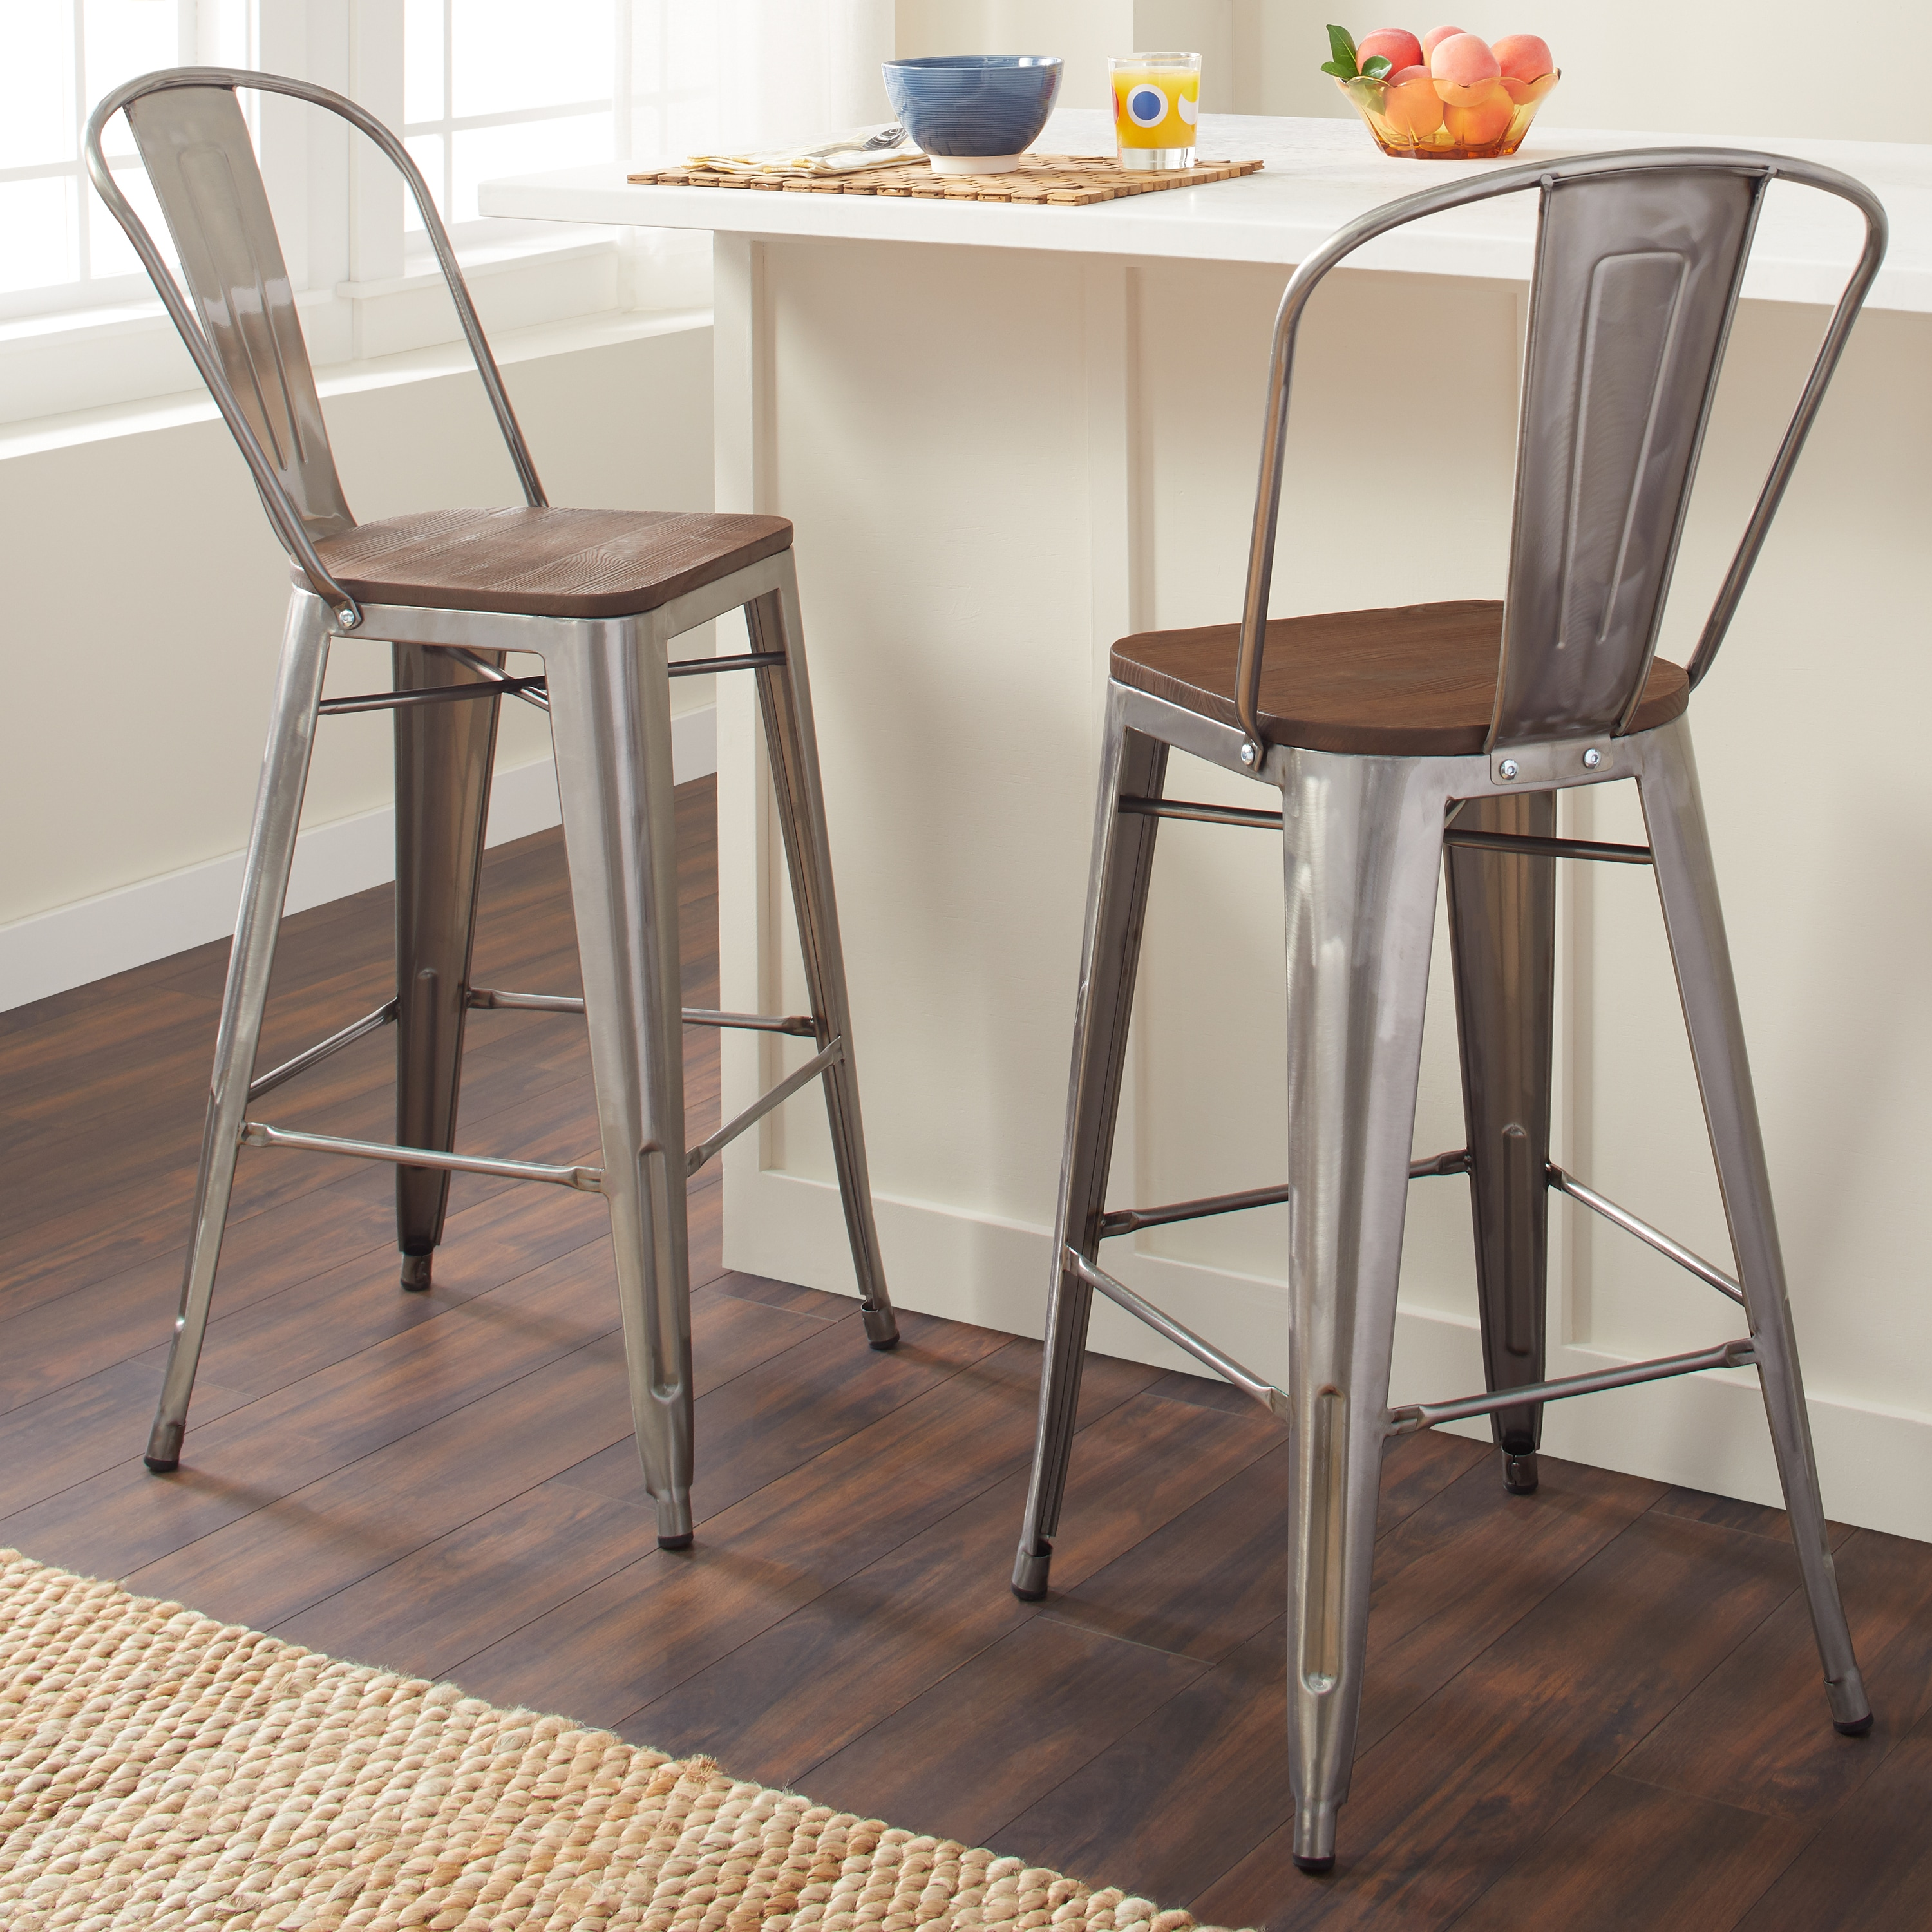 Tabouret Bistro Wood Seat Gunmetal Finish Bar Stools Set Of 2 Free Shipping Today 9412704